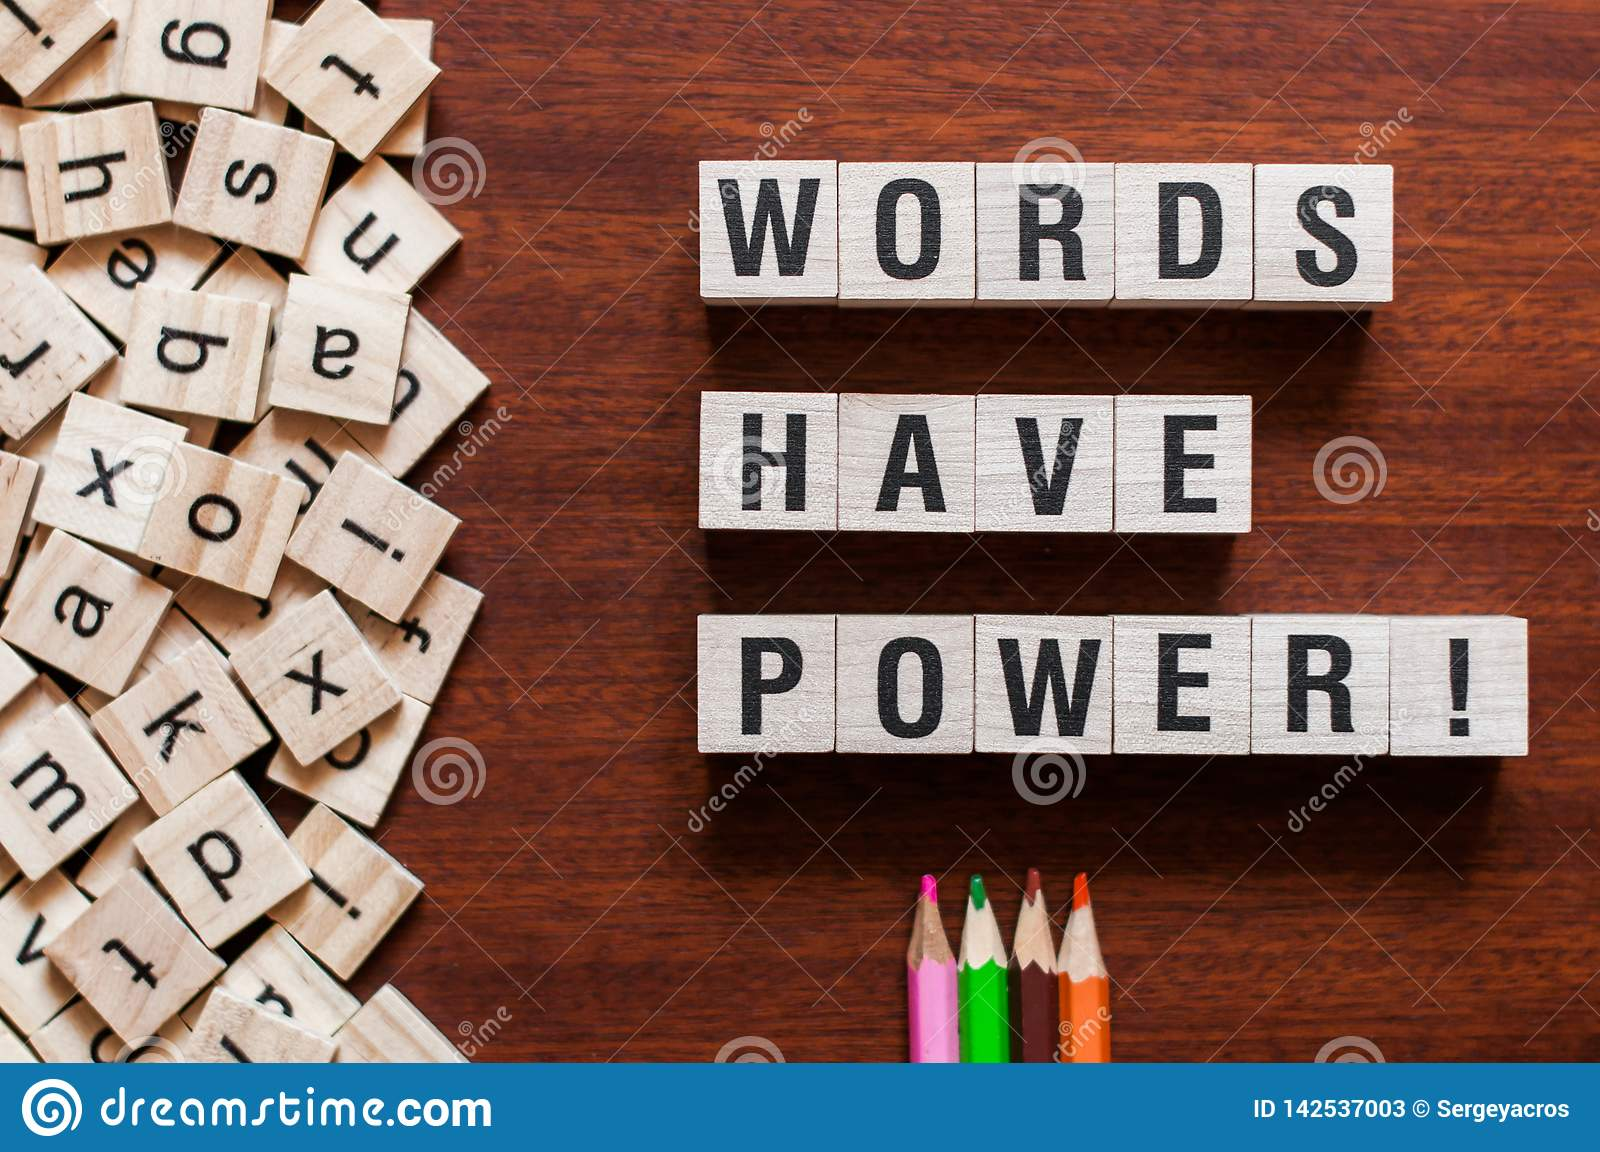 Words Have Power word concept